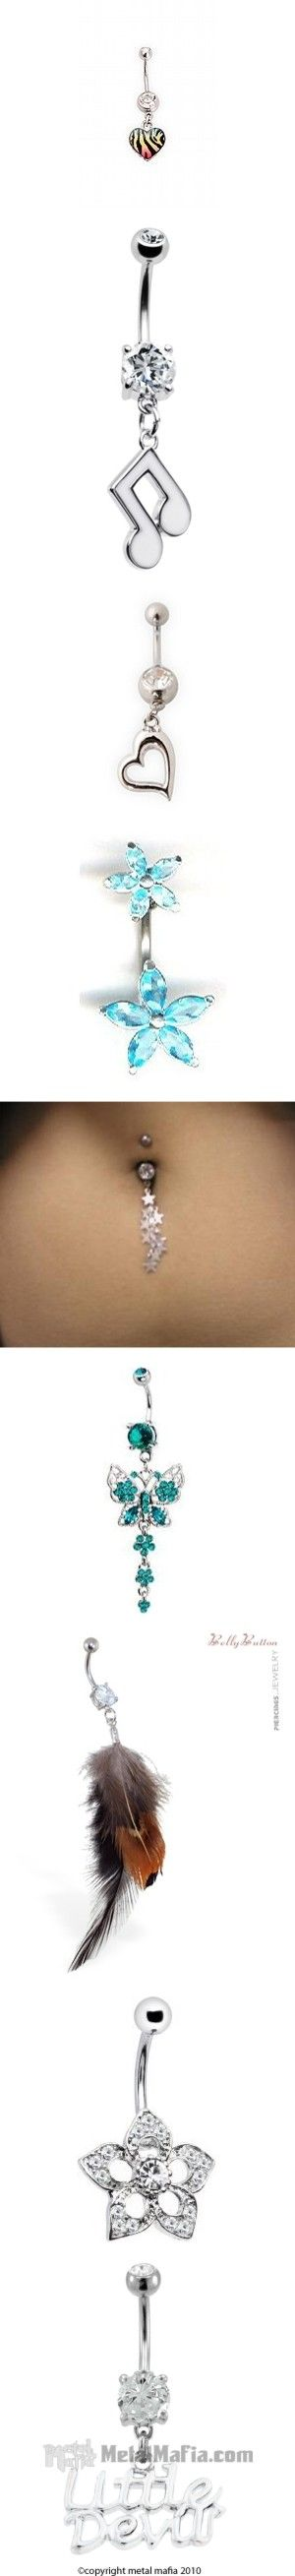 """""""belly button rings i want 3"""" by megan-purpleswag ❤ liked on Polyvore"""